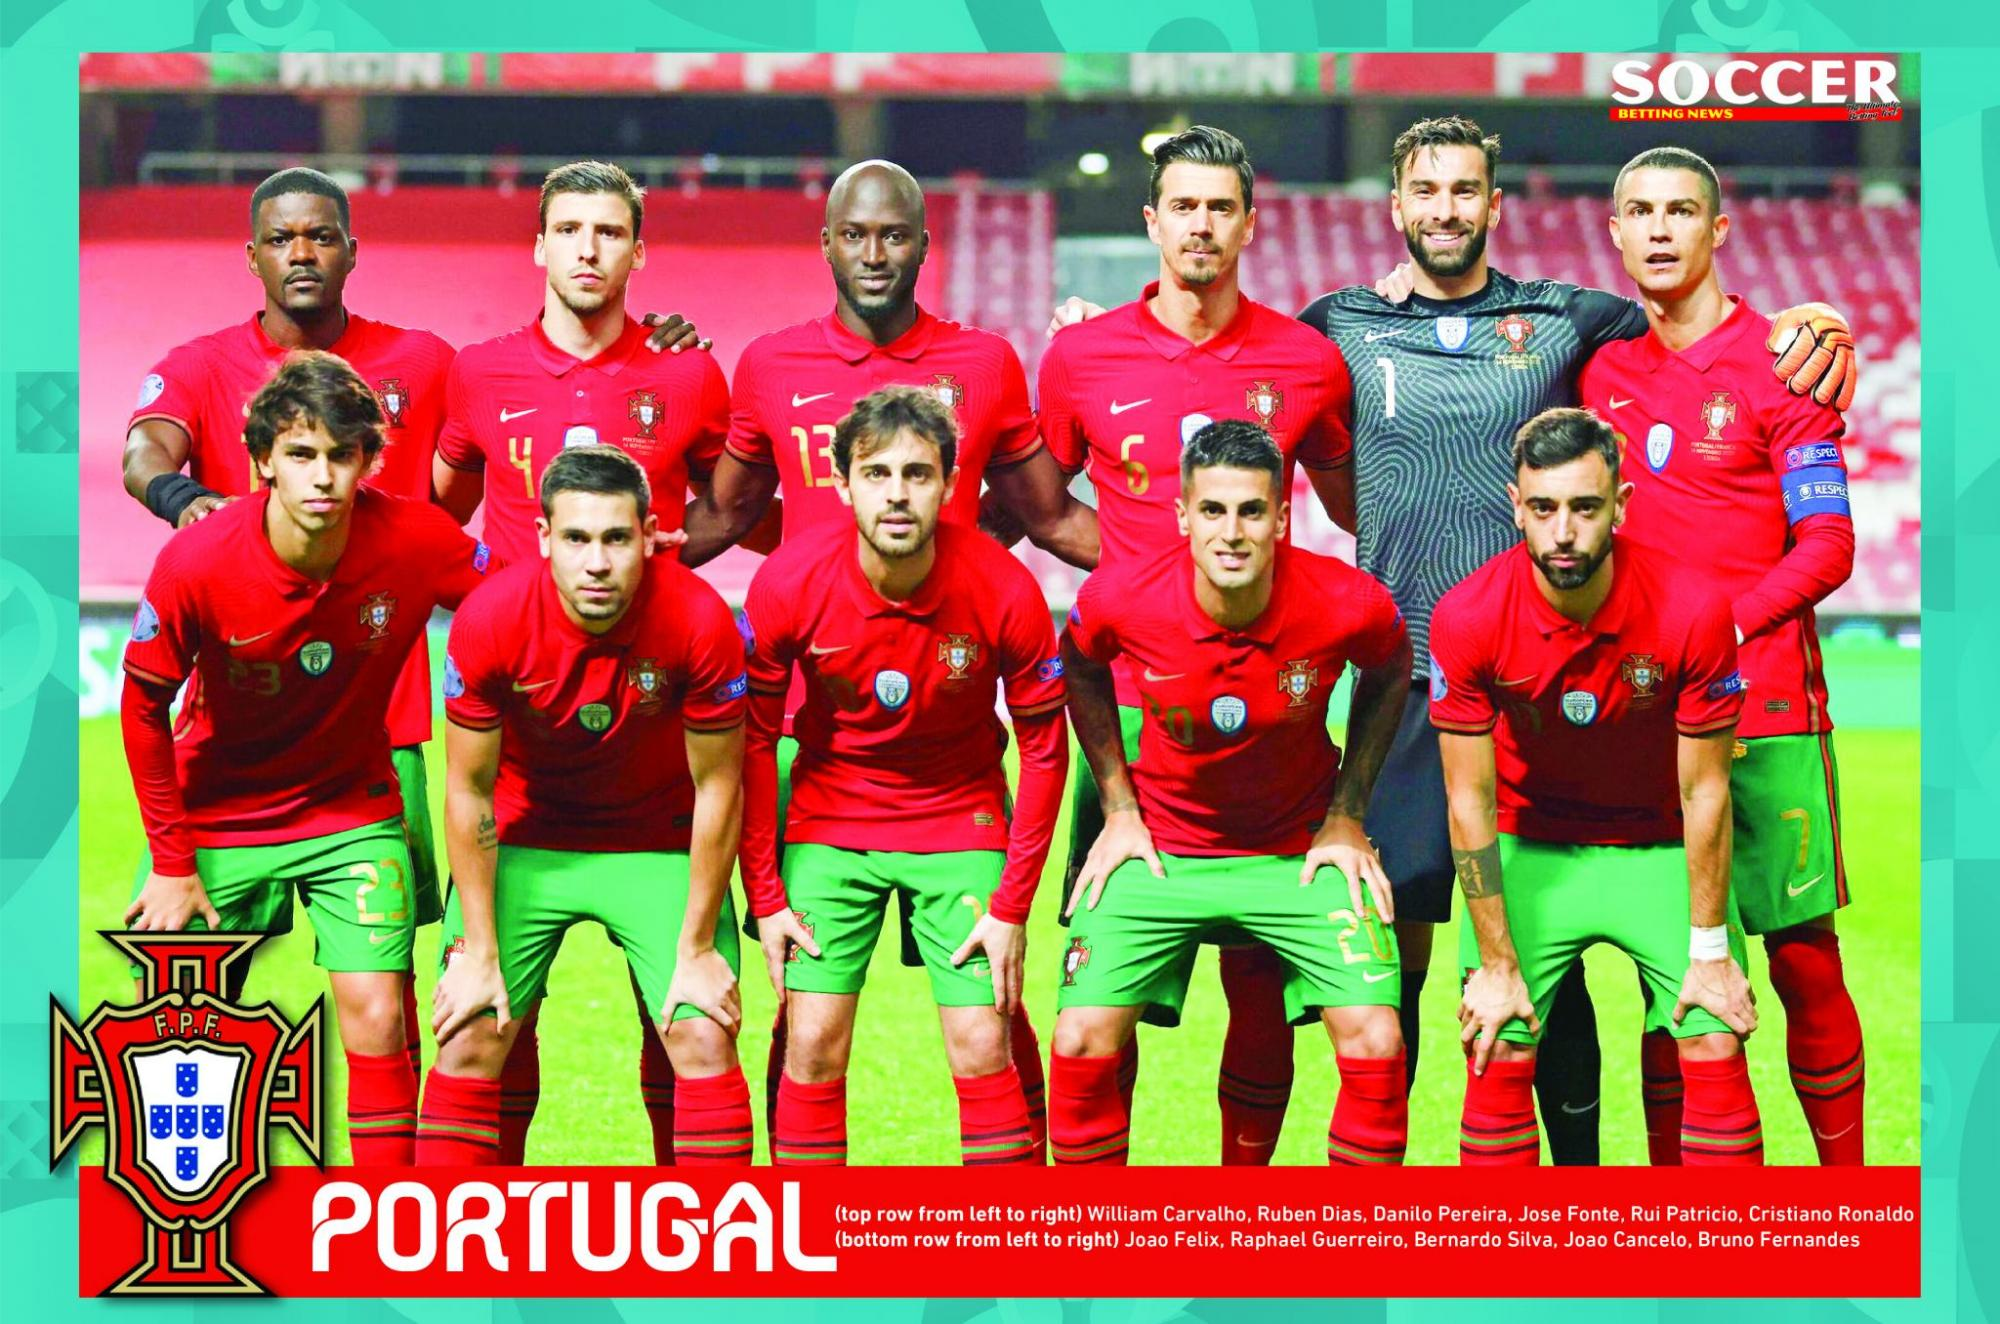 The 2016 Champions Portugal will be aiming to defend their crown